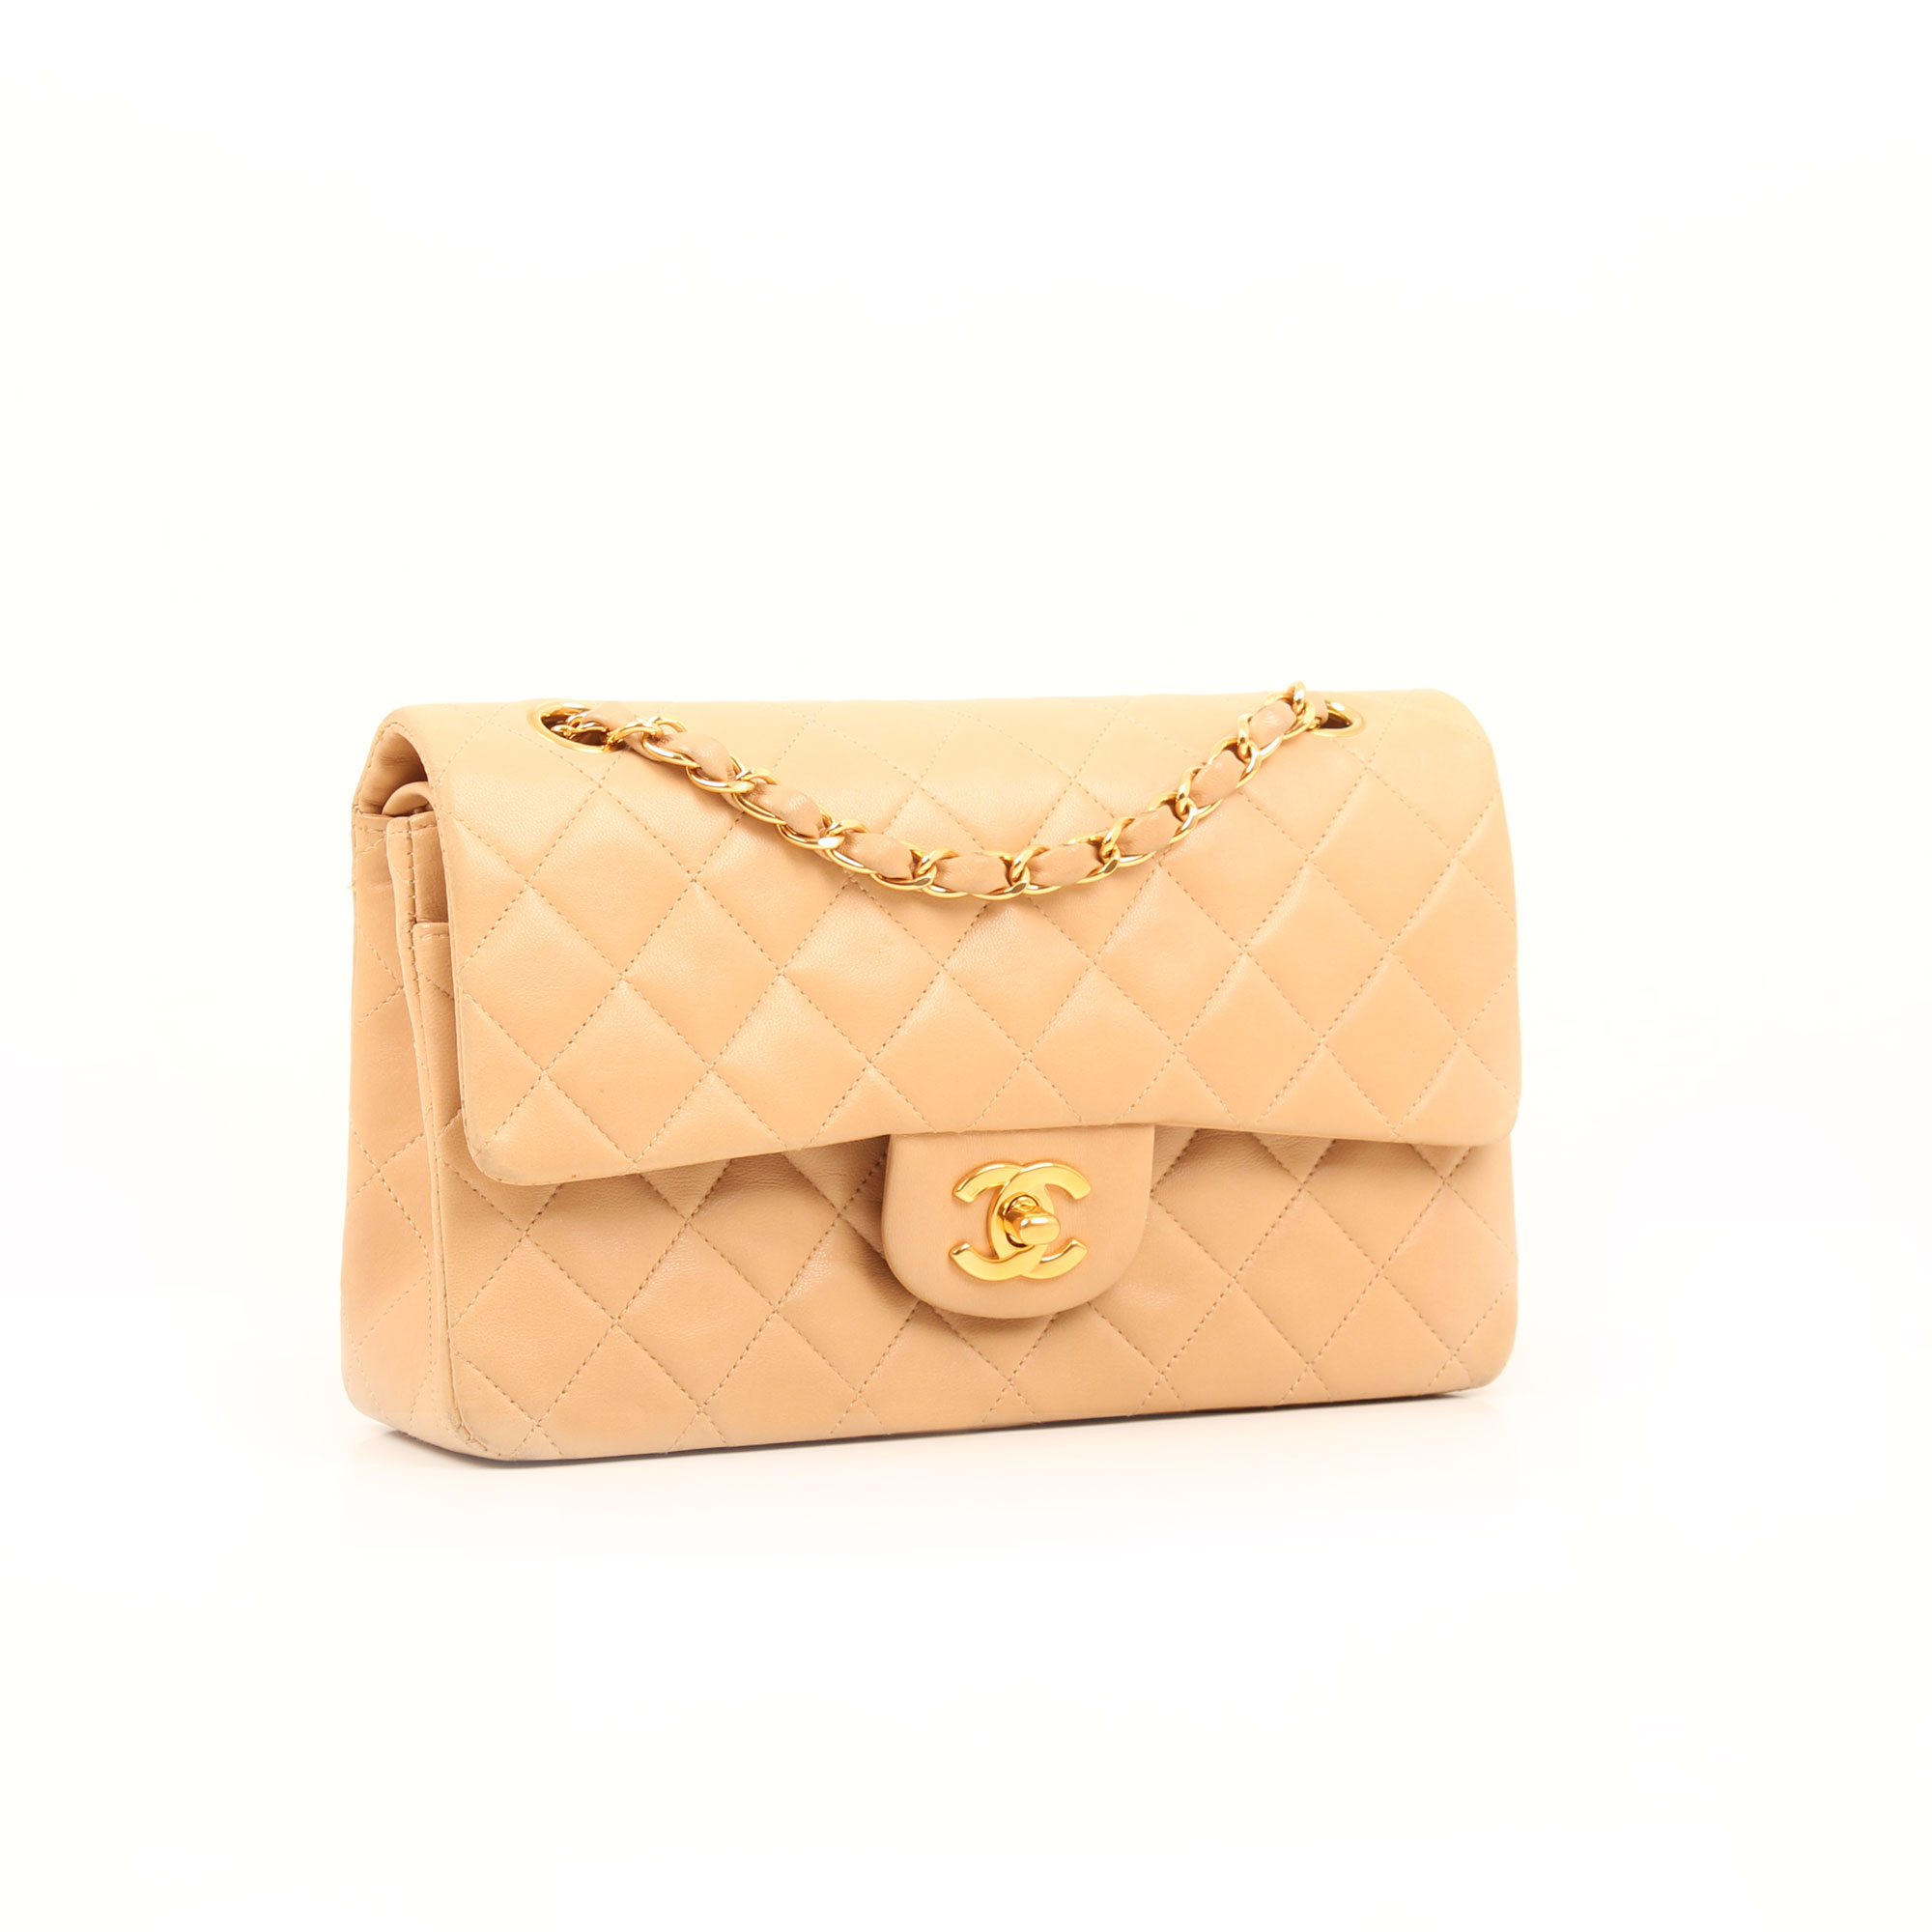 b1ddfa48b036 General image of chanel classic double flap bag beige